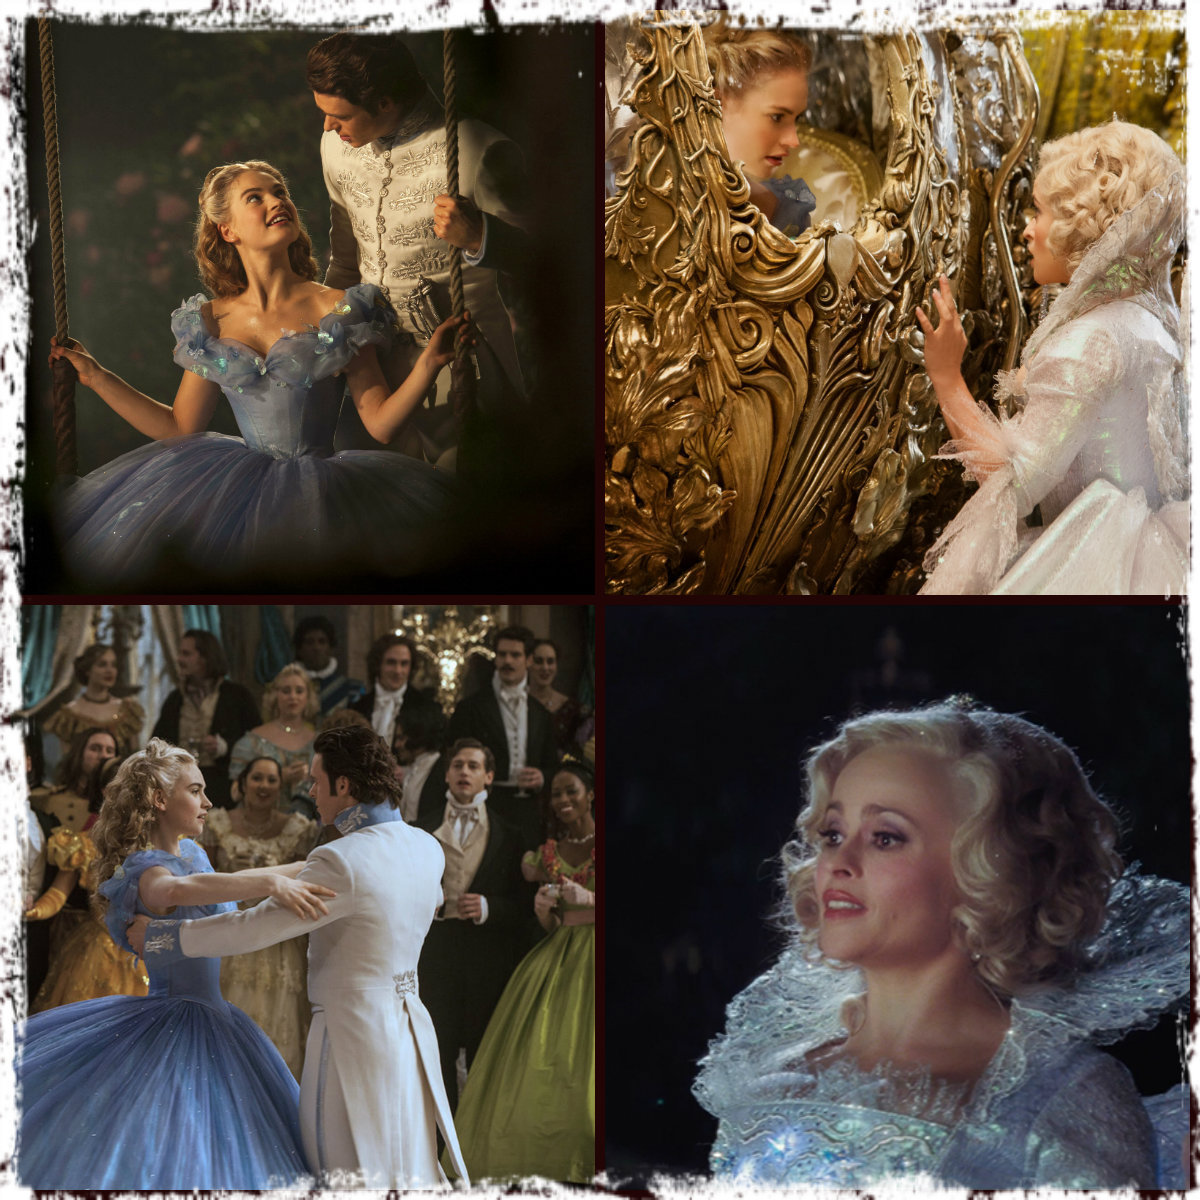 cinderella critique Review of disney's live-action film cinderella directed by kenneth branagh, starring cate blanchett, lily james, richard madden, and helena.